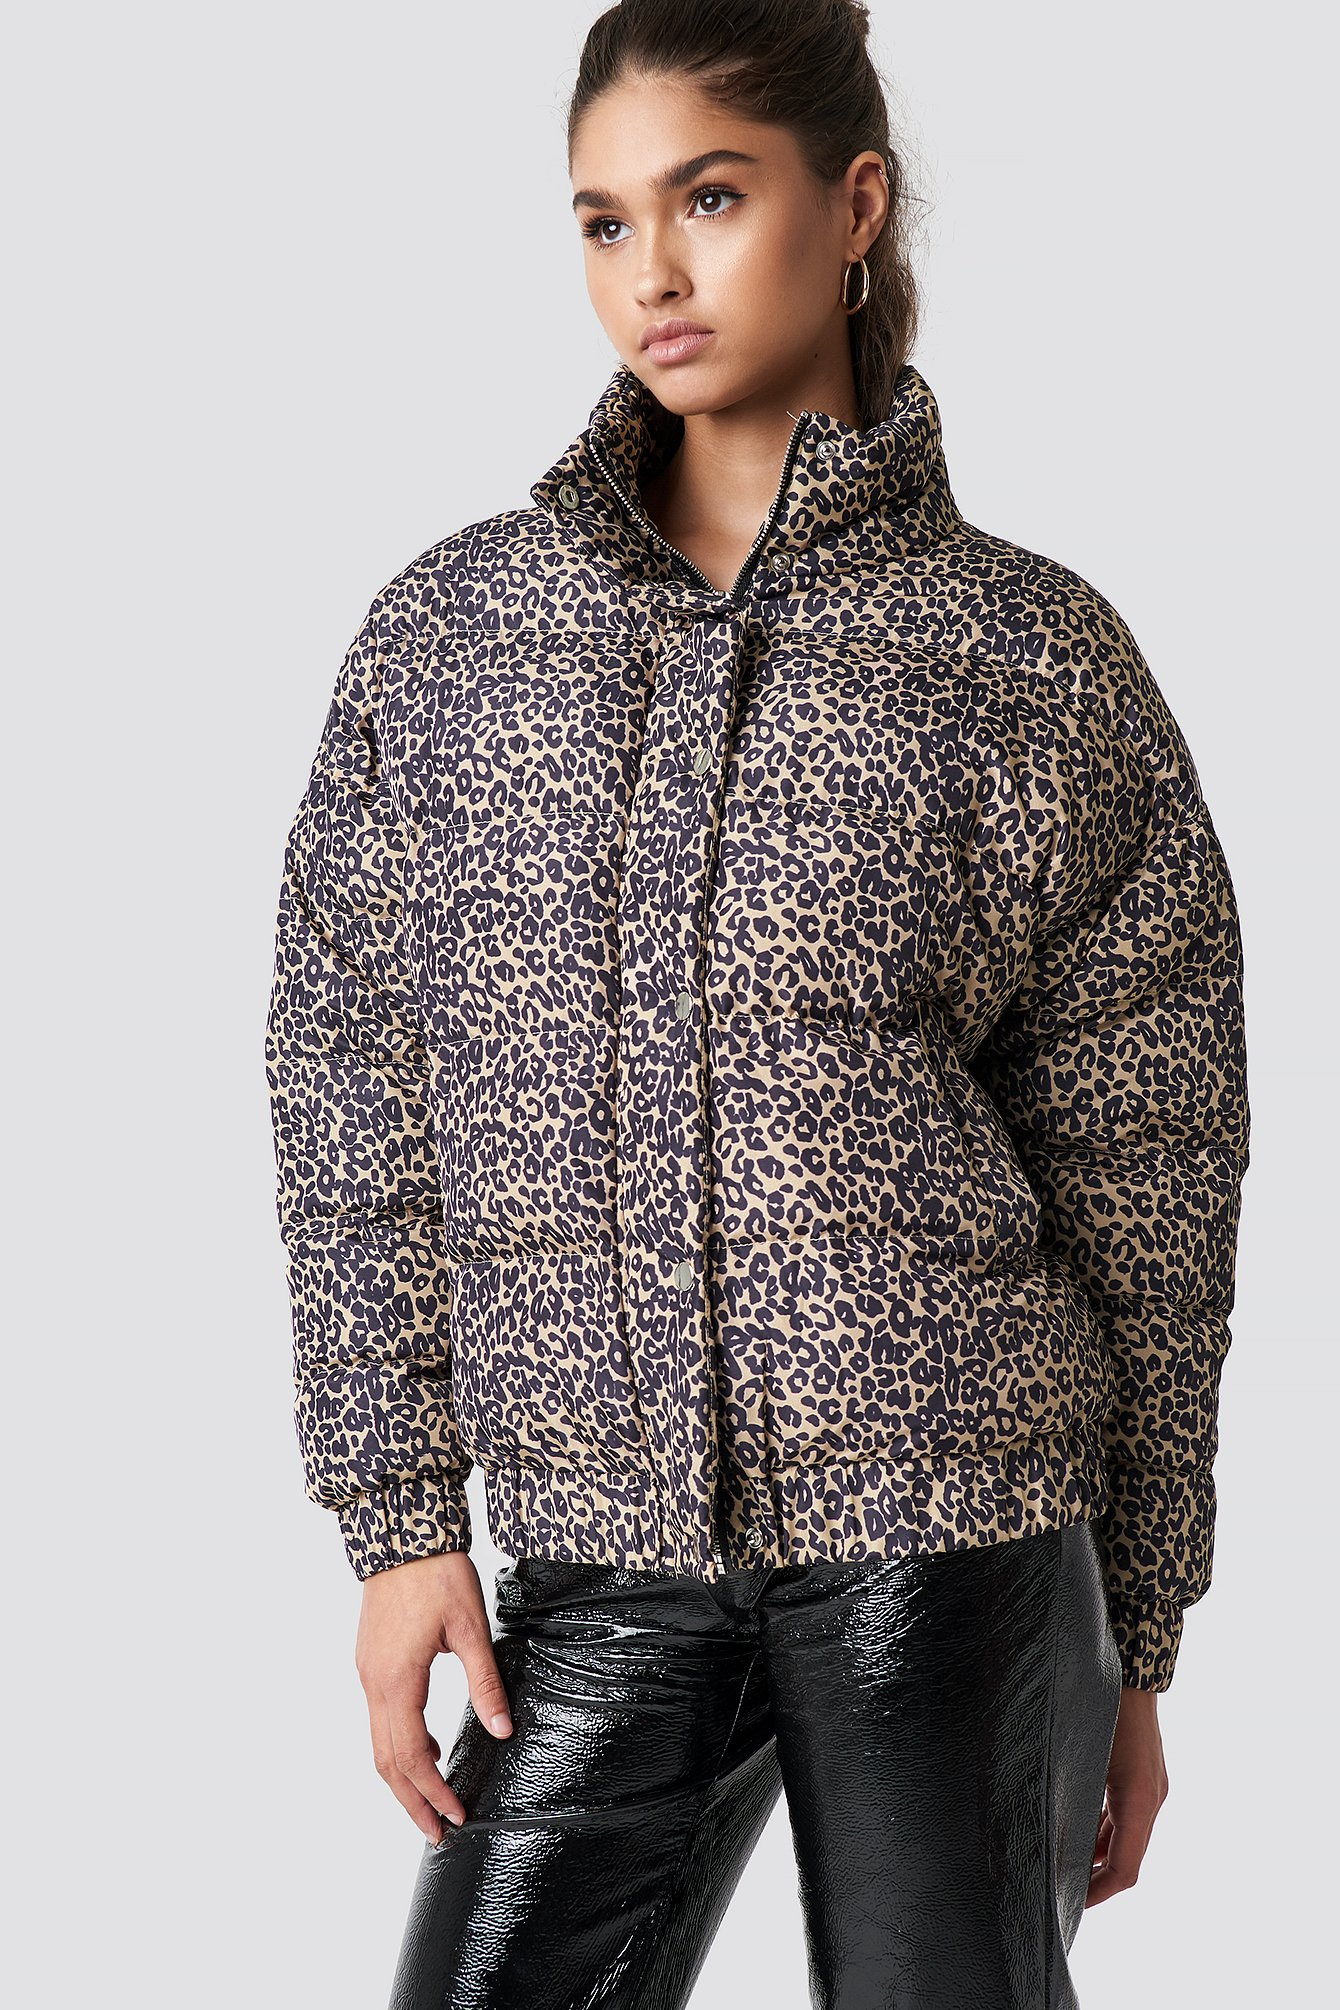 sparkz -  Raja Jacket - Beige,Multicolor